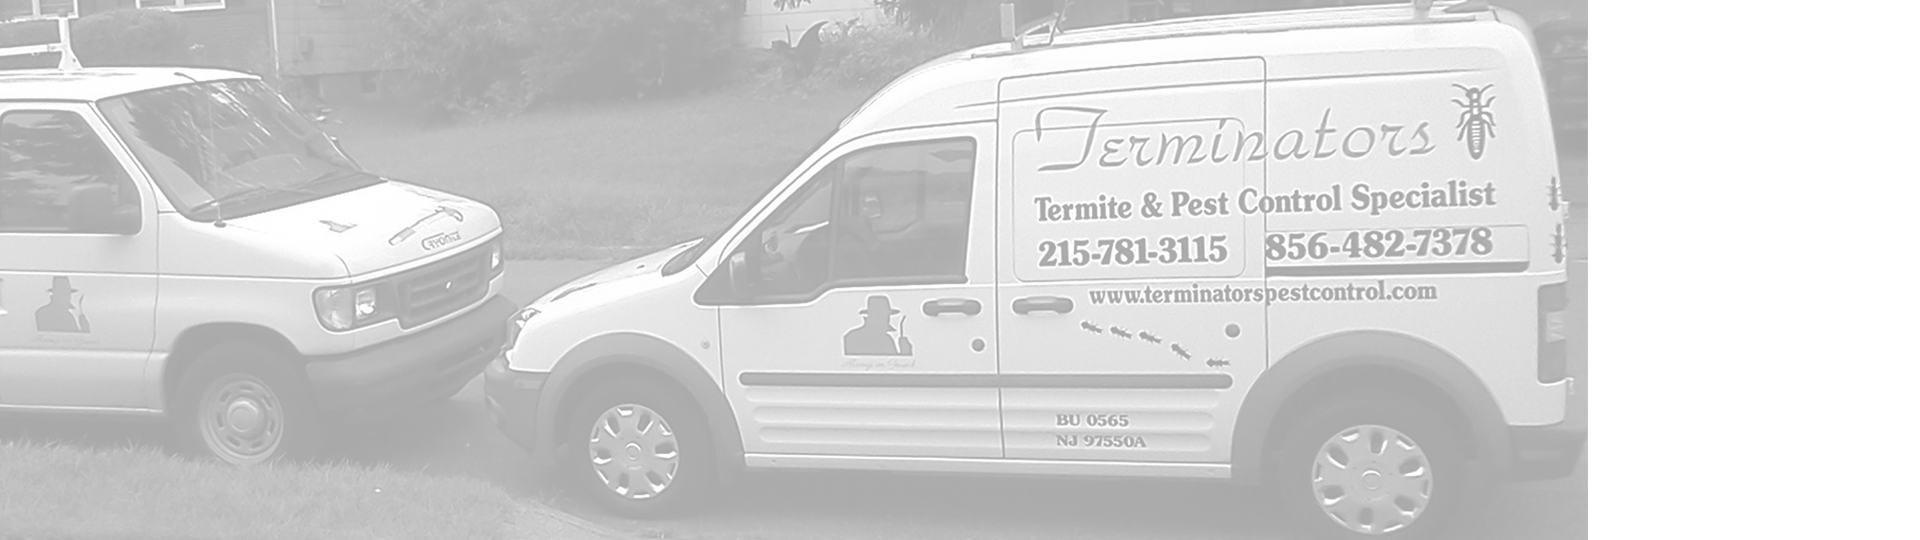 Terminators Pest Control at work